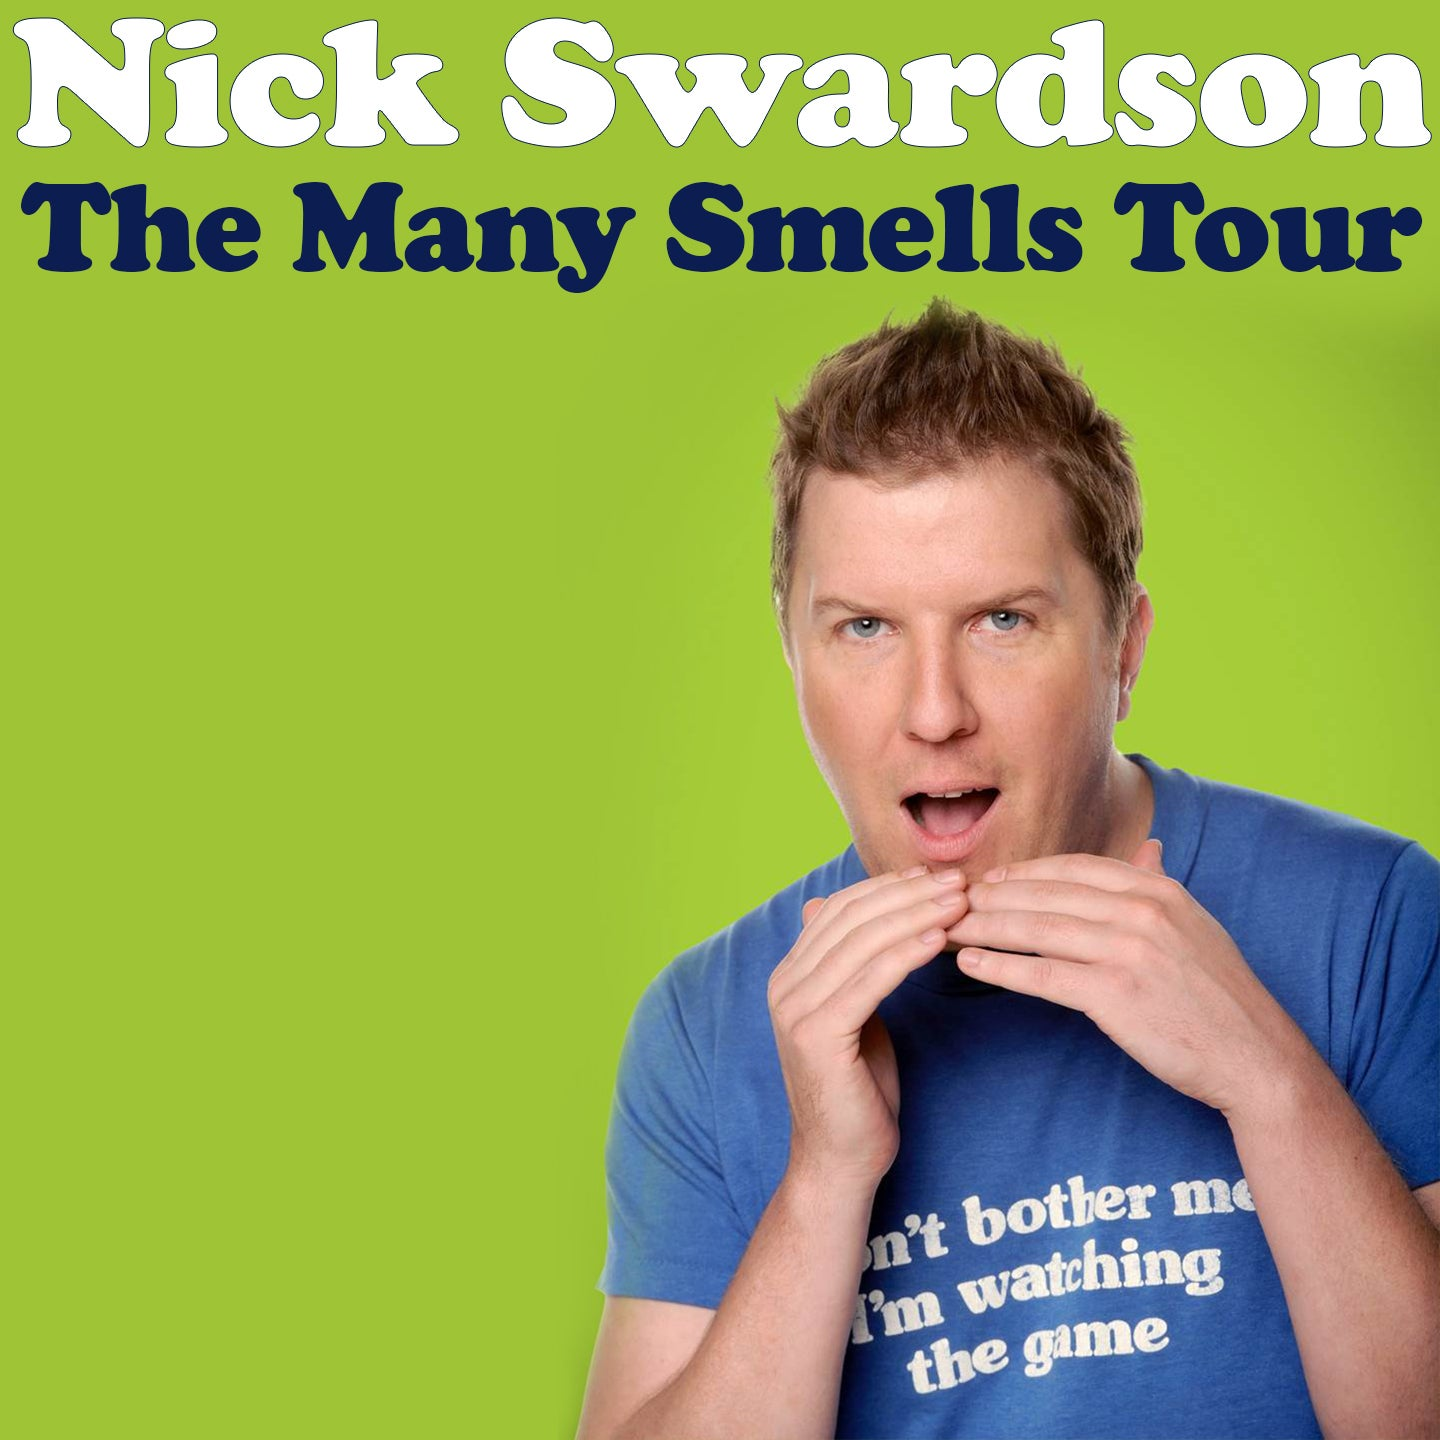 Nick-Swardson_1440_UPDATED.jpg